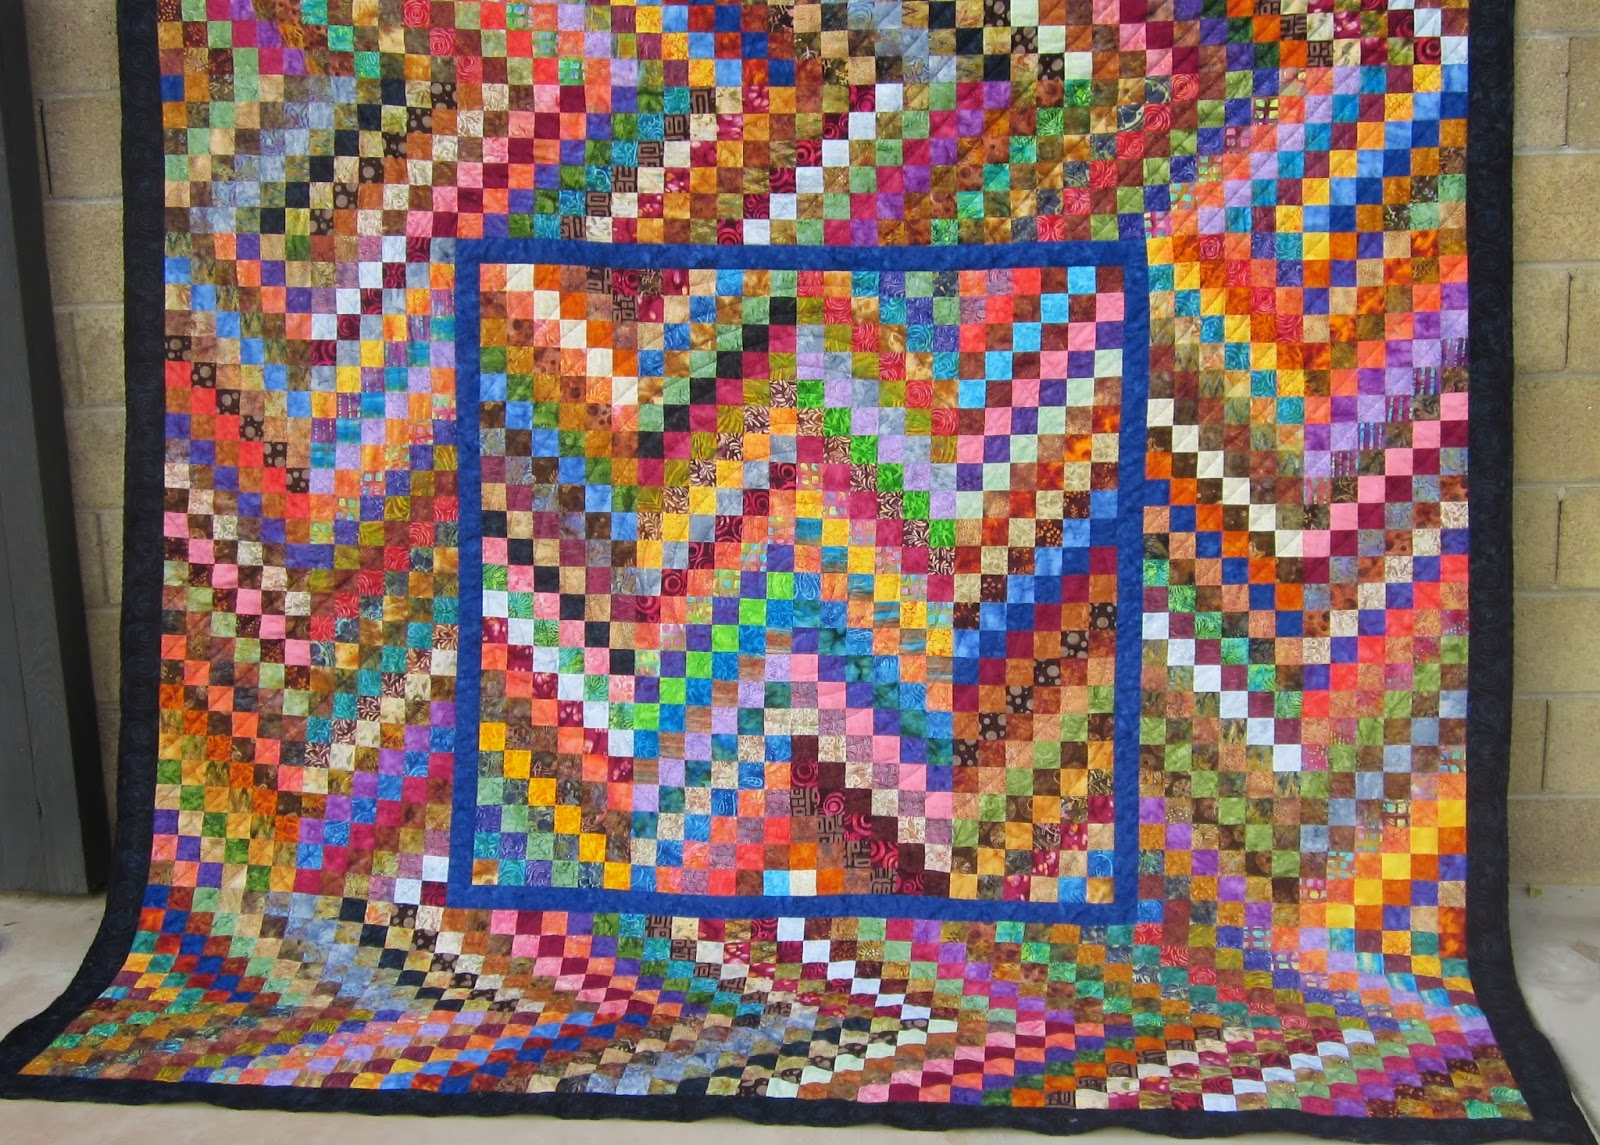 http://quiltparadigm.blogspot.com/2014/02/doing-happy-dance.html